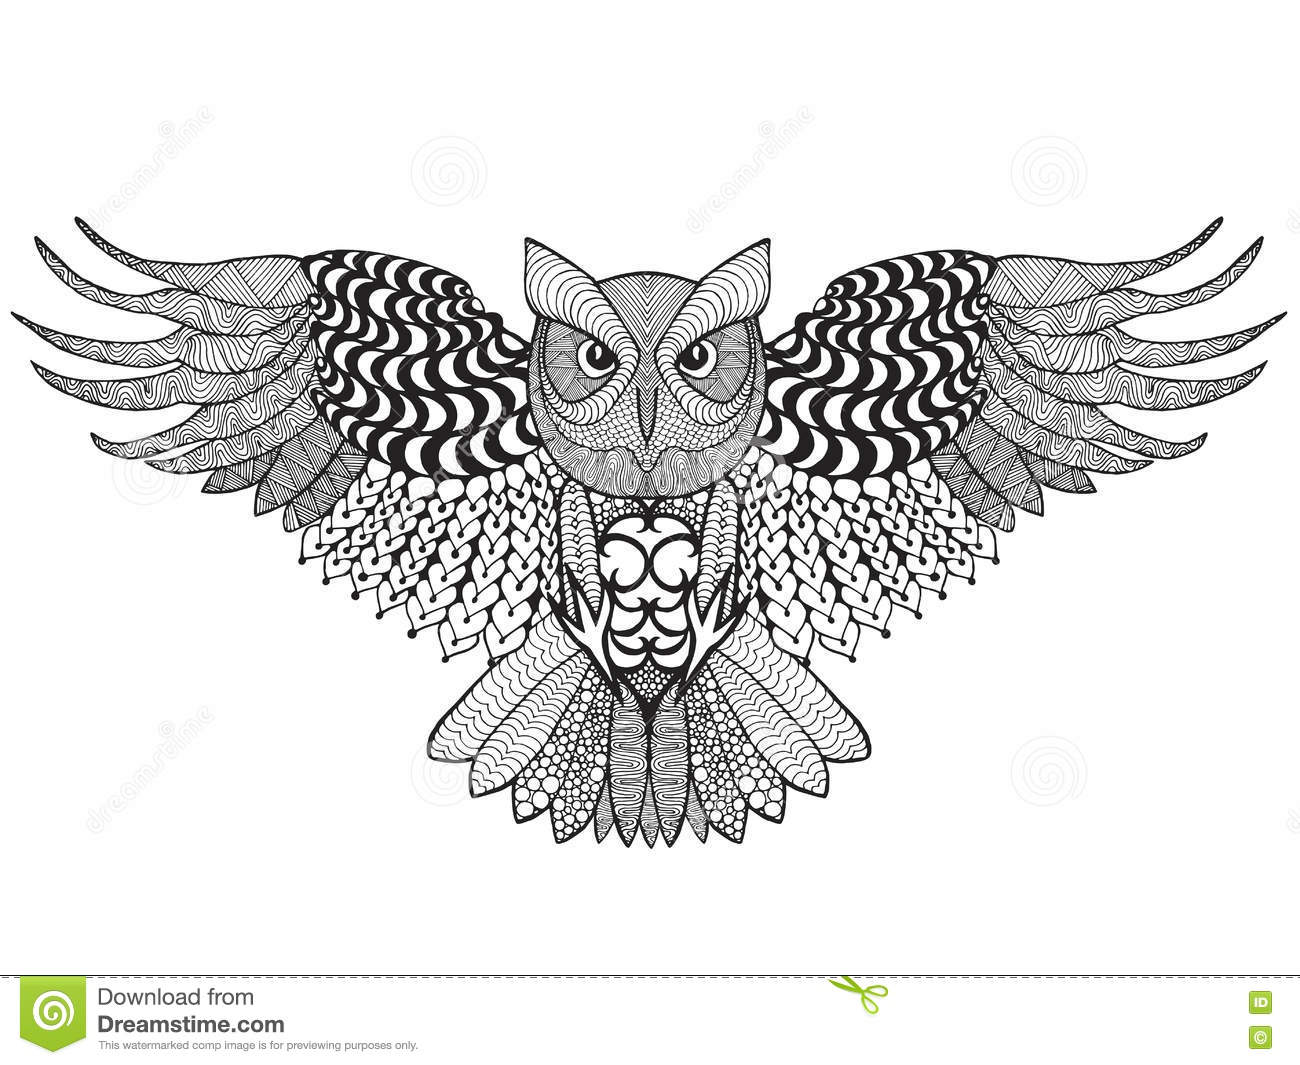 eagle owl adult antistress coloring page black white hand drawn doodle animal ethnic patterned vector sketch tattoo poster